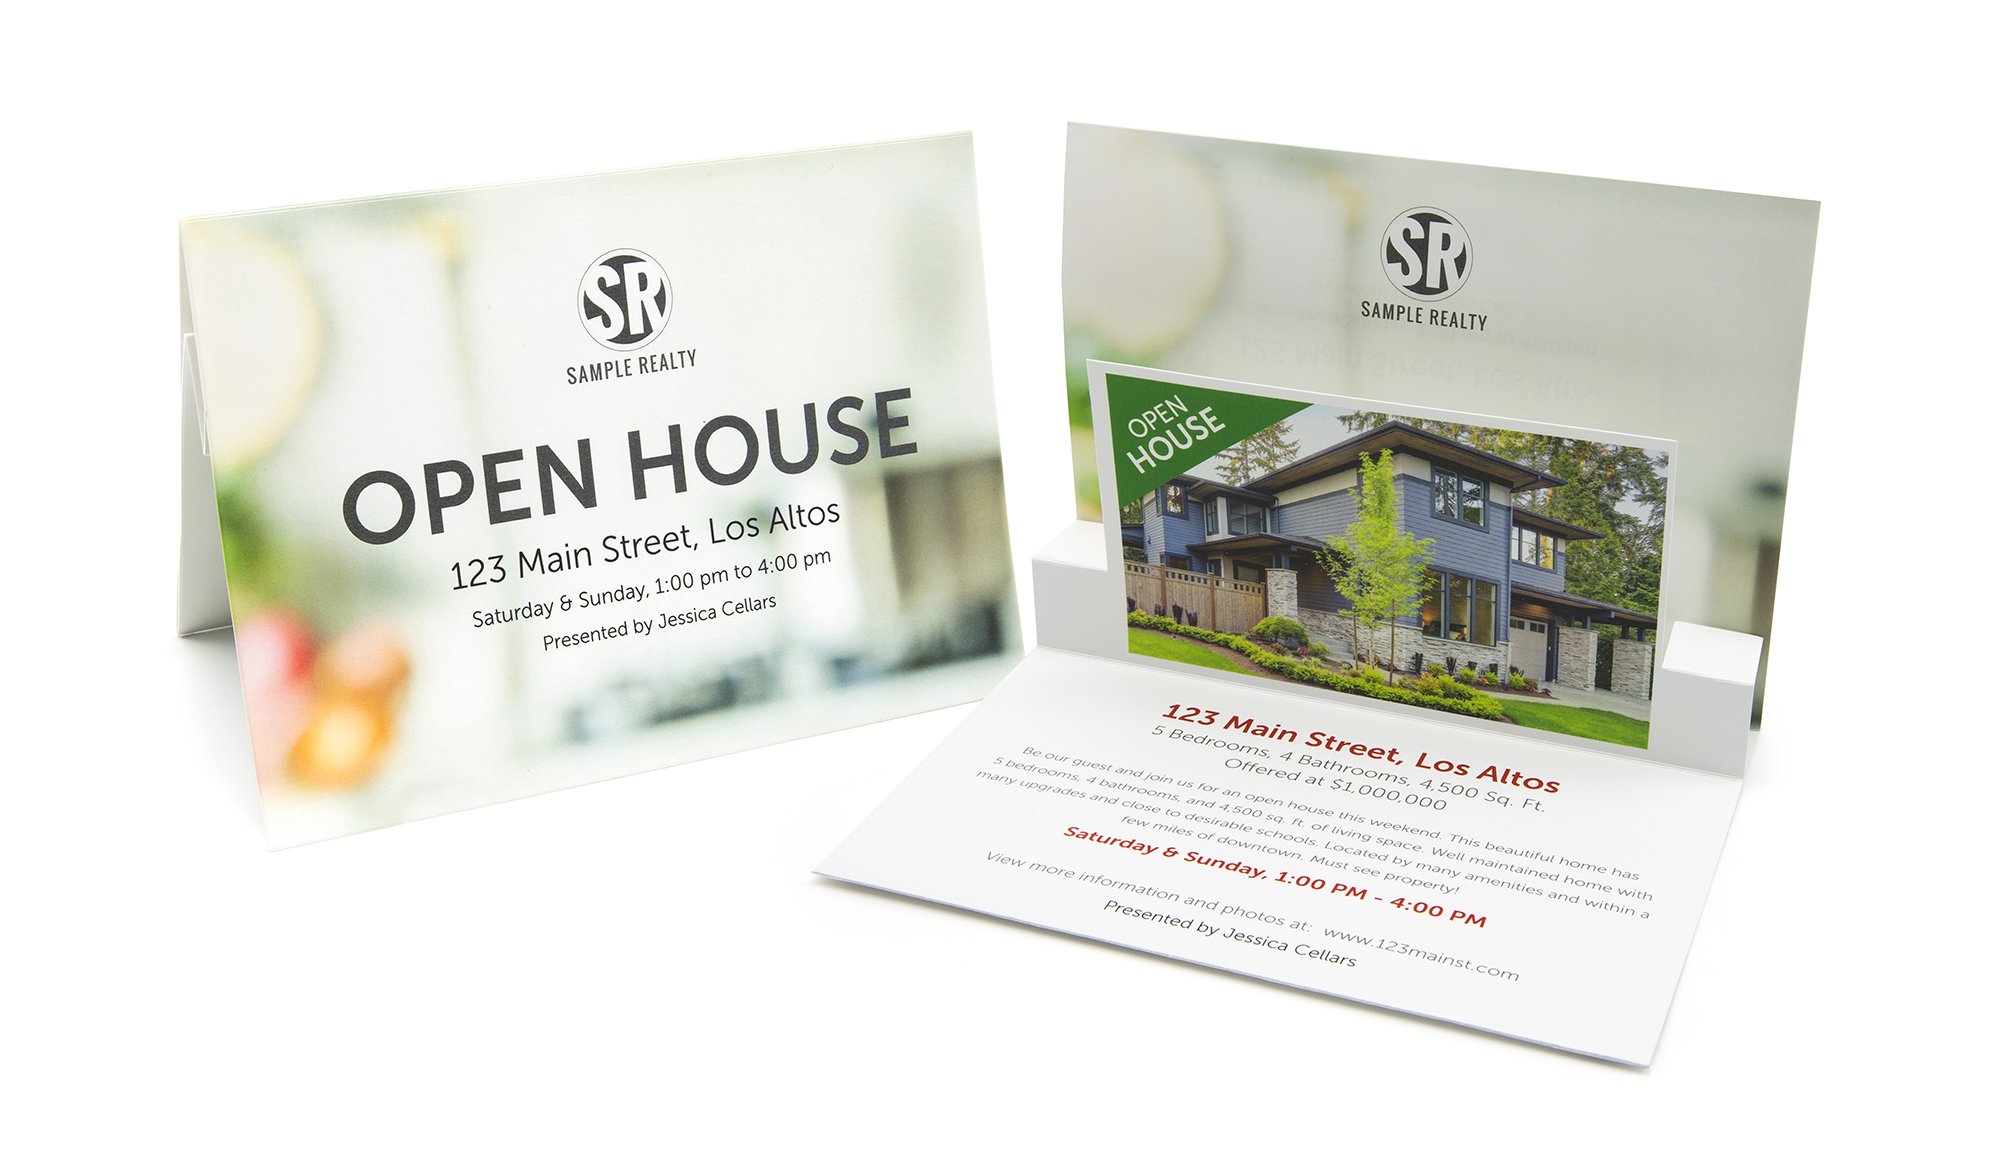 Open House Pop-Up Card Image